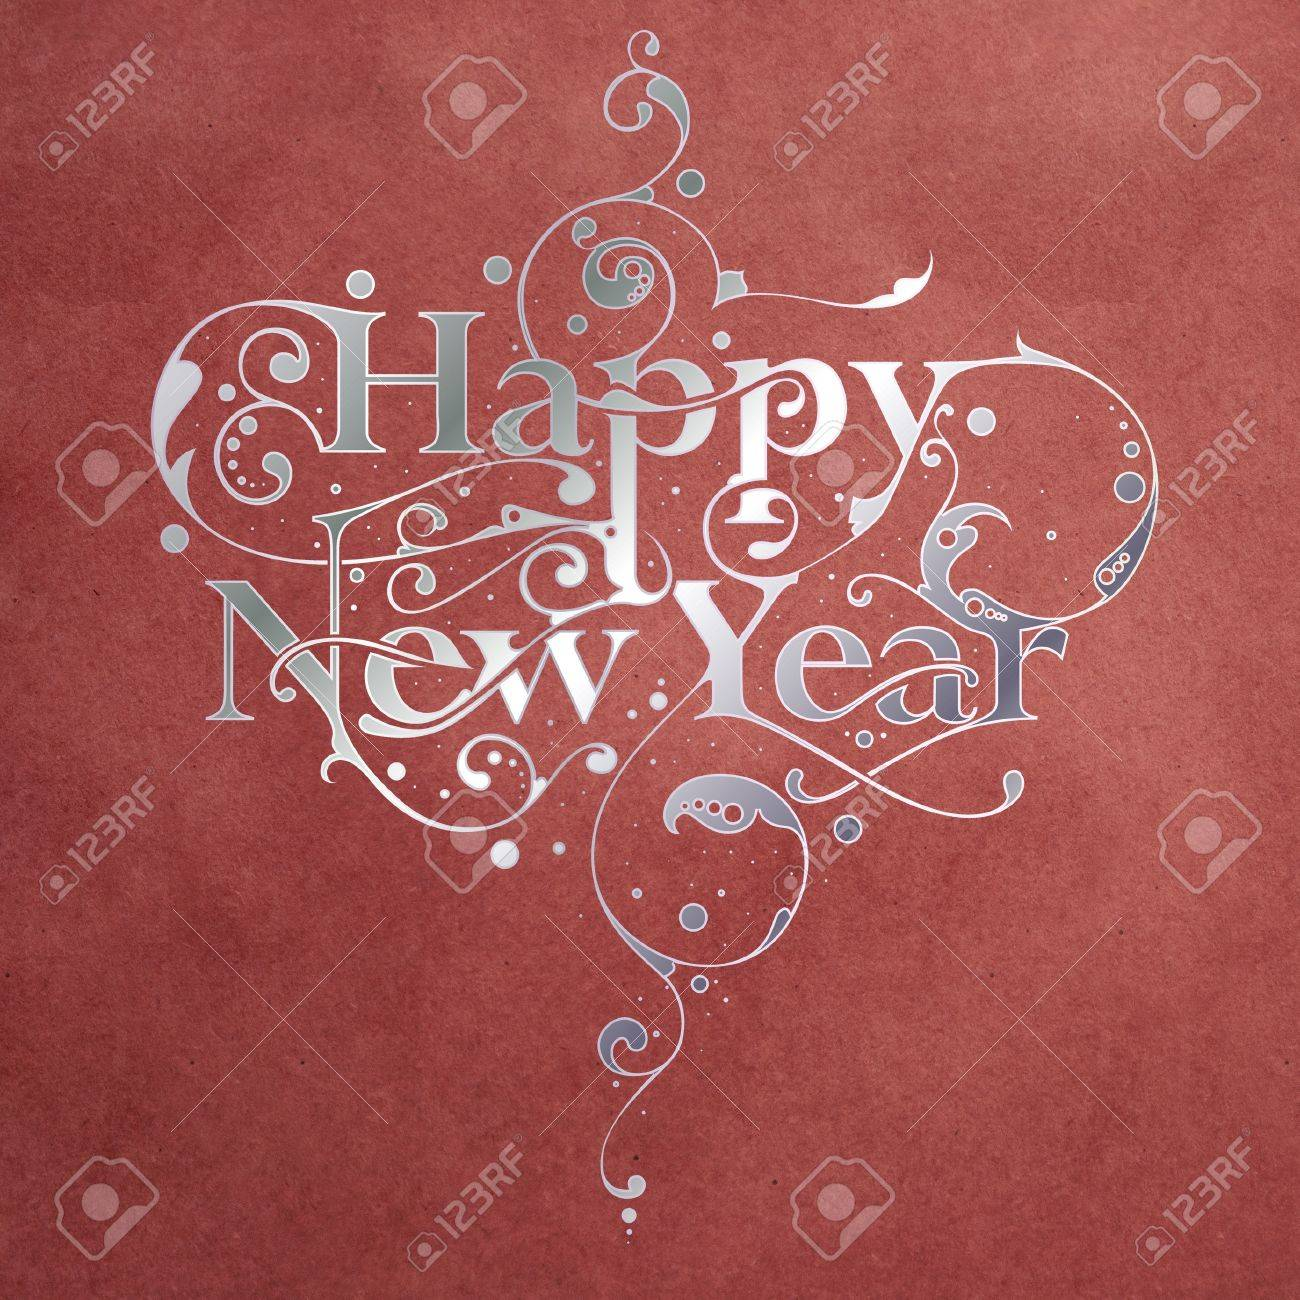 Beautiful hand-made ornamental typography Happy New Year on paper background Stock Photo - 16104298